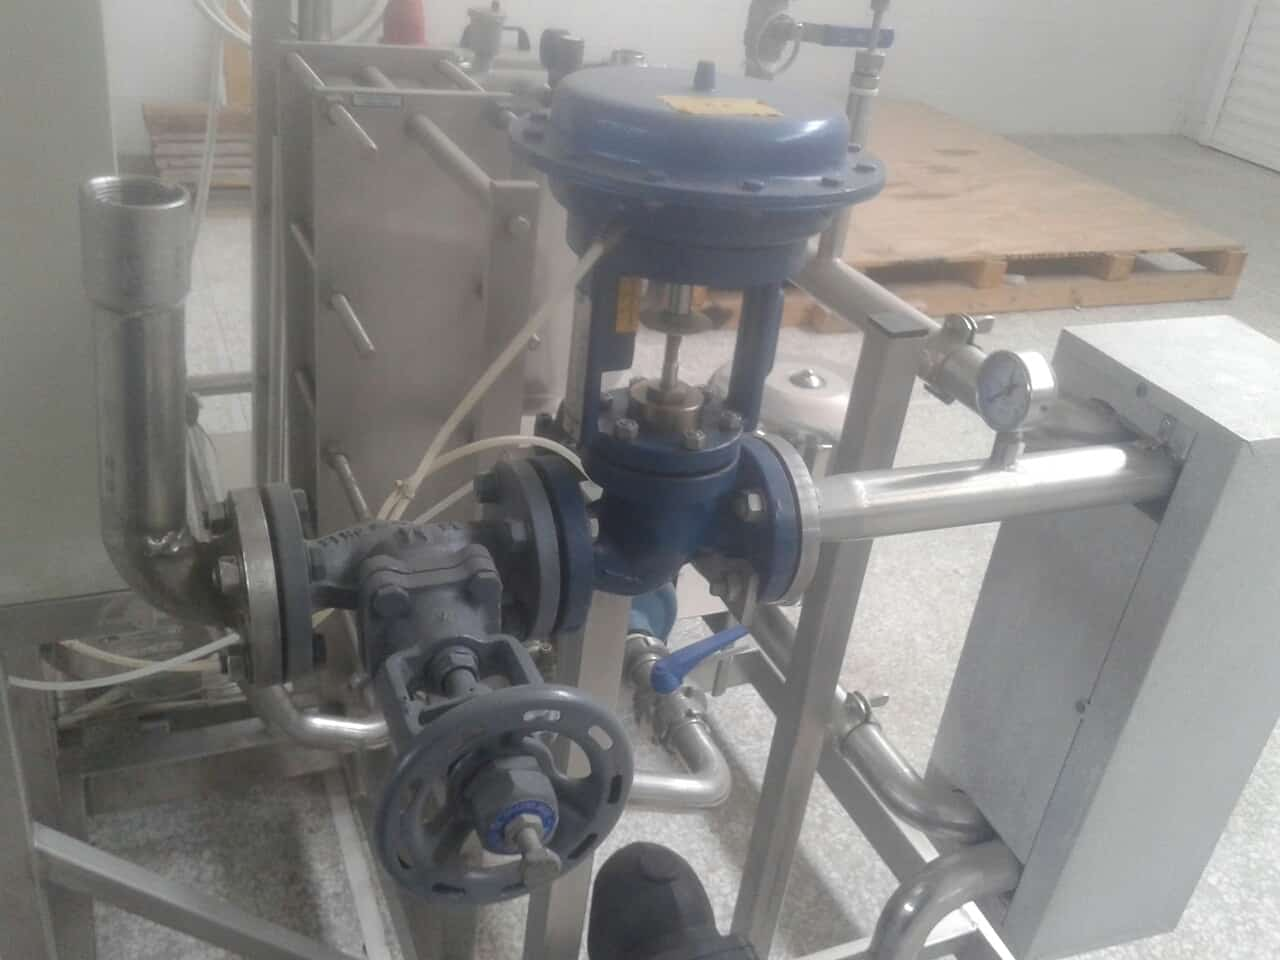 3,000 Liter/Hr Skid-Mounted Pasteurizer Equipped with (2) Centrifugal Pumps, S/S Balance Tank